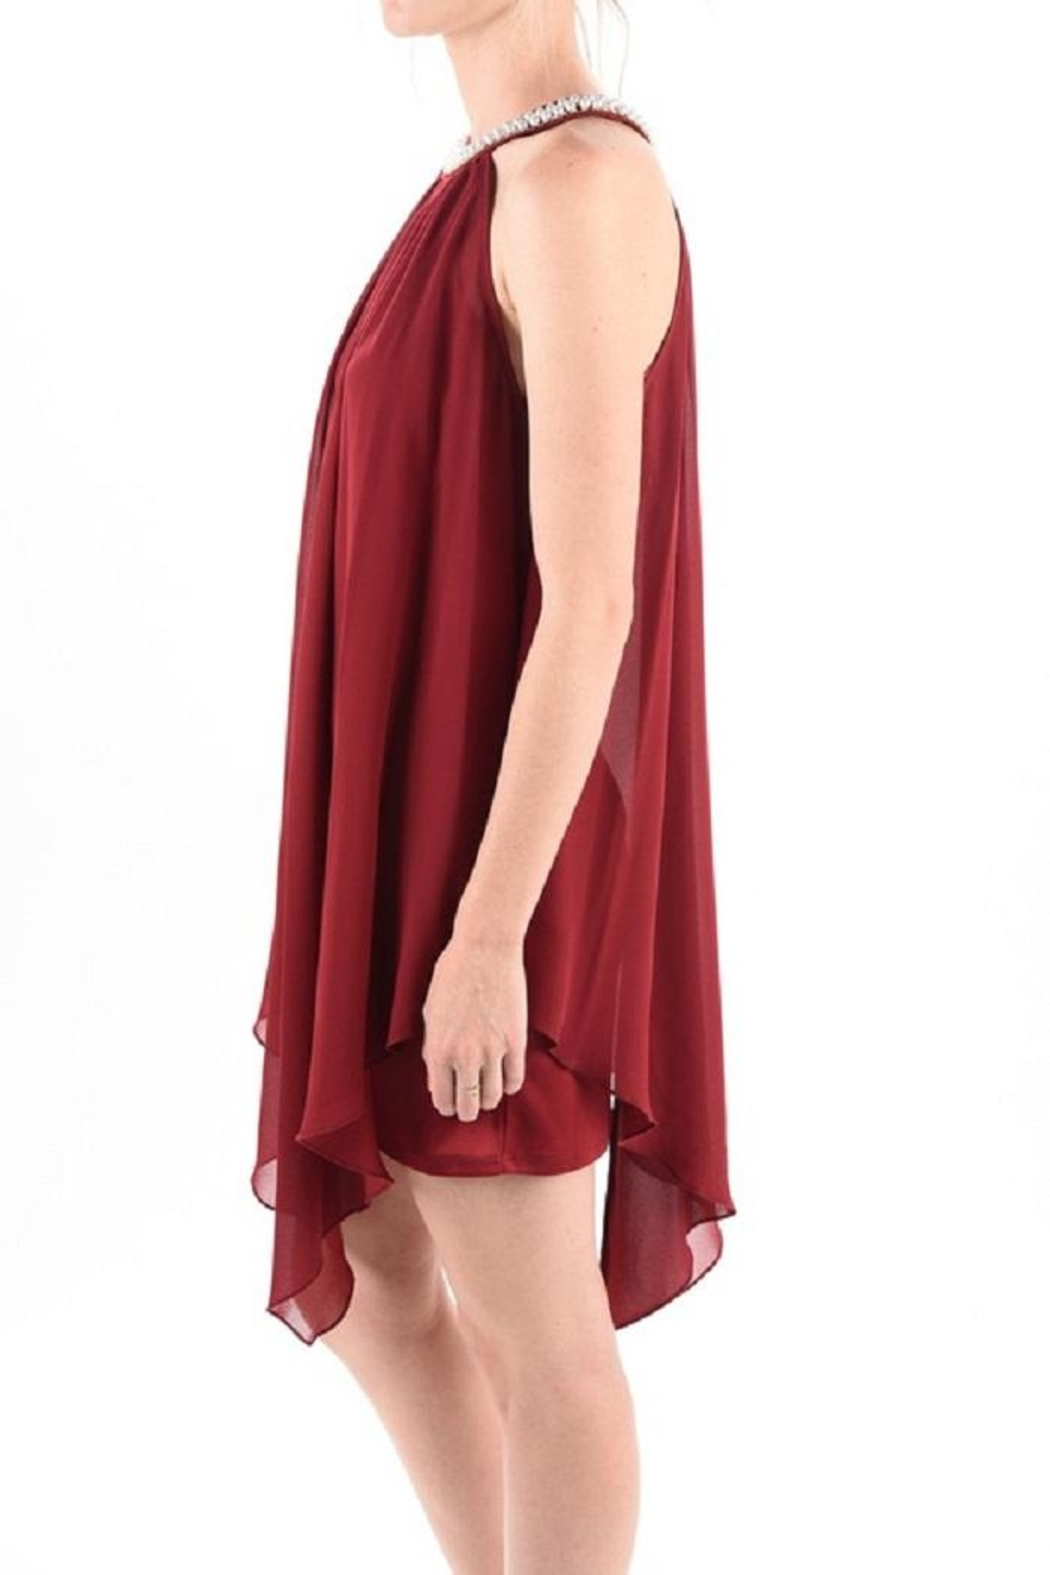 MICHEL Pearl Neck Dress - Front Full Image